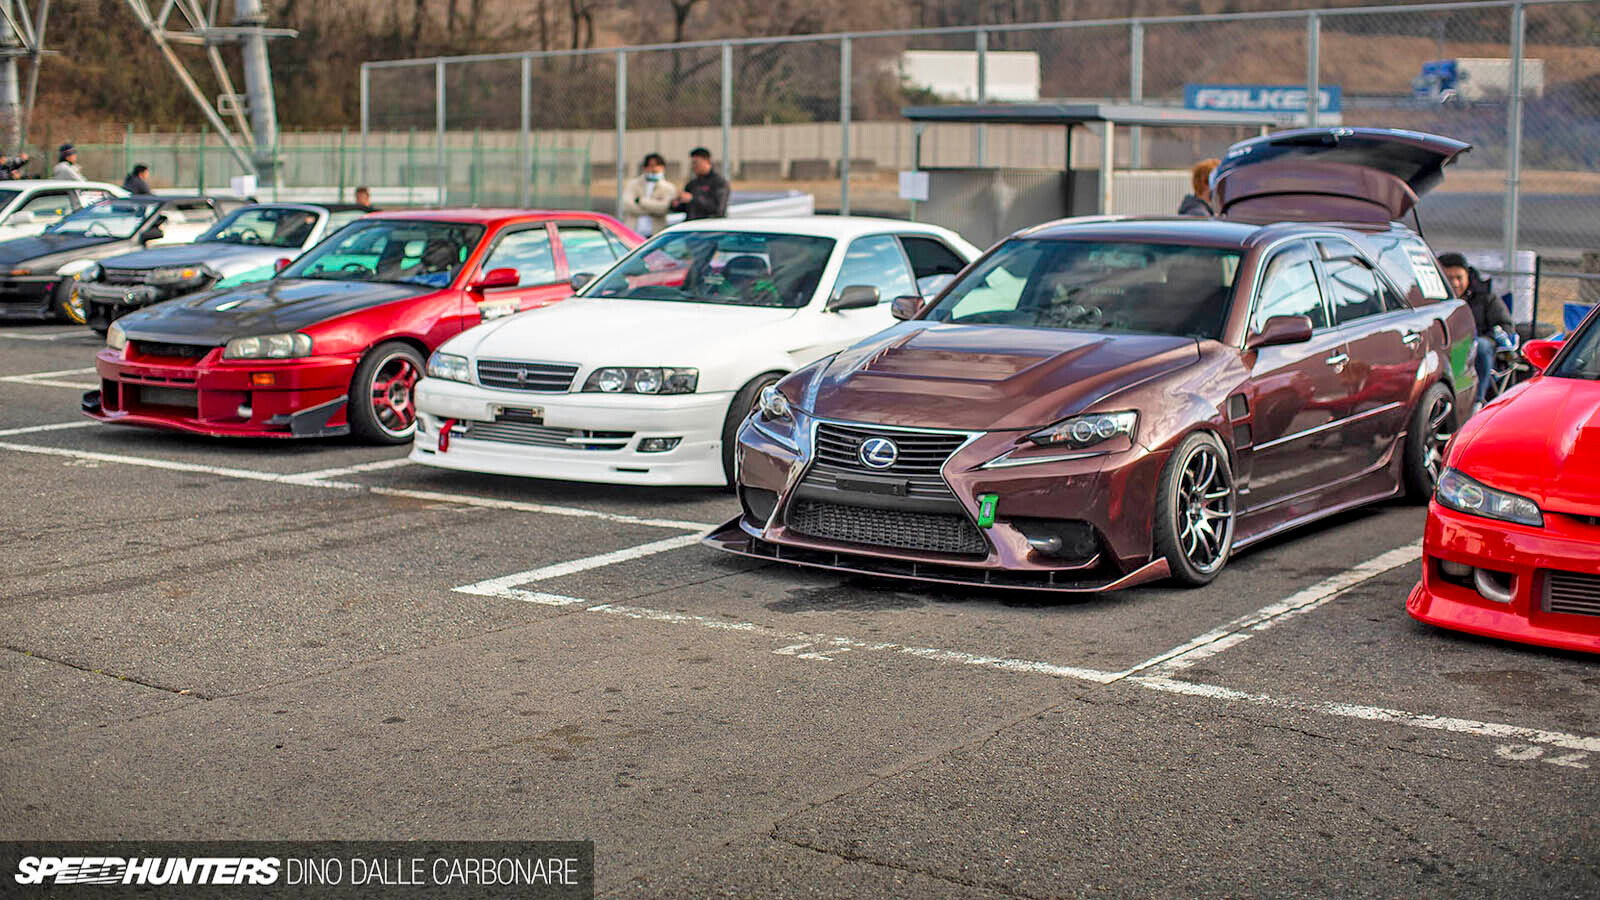 Lexus IS Build is a Drifting Super Wagon